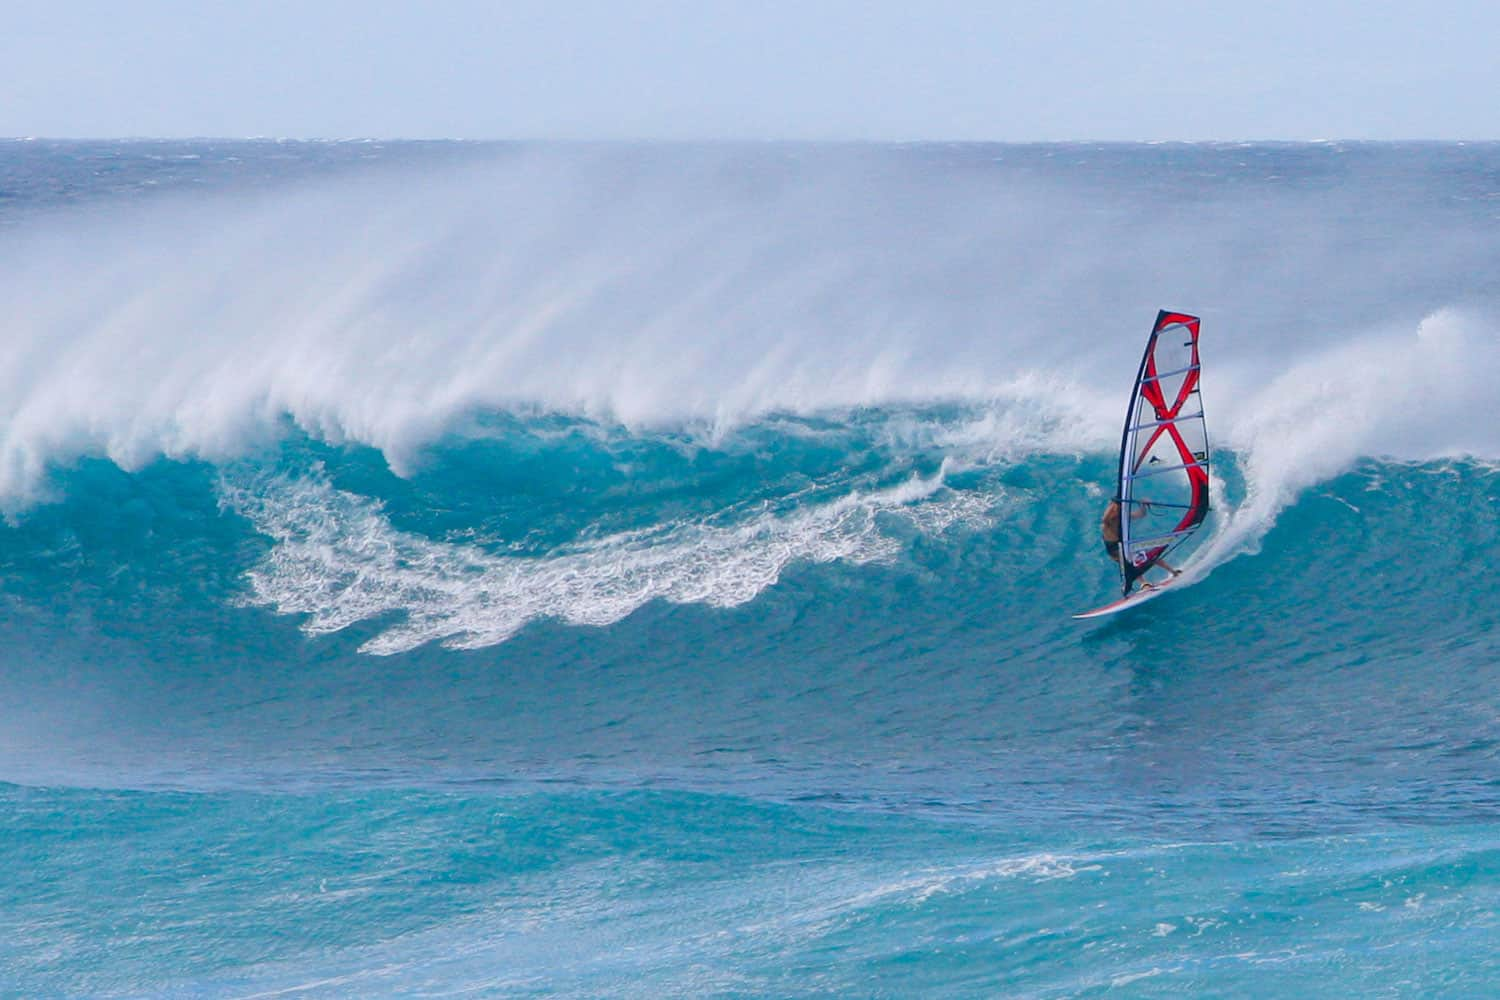 An extreme wind surfer riding a huge wave